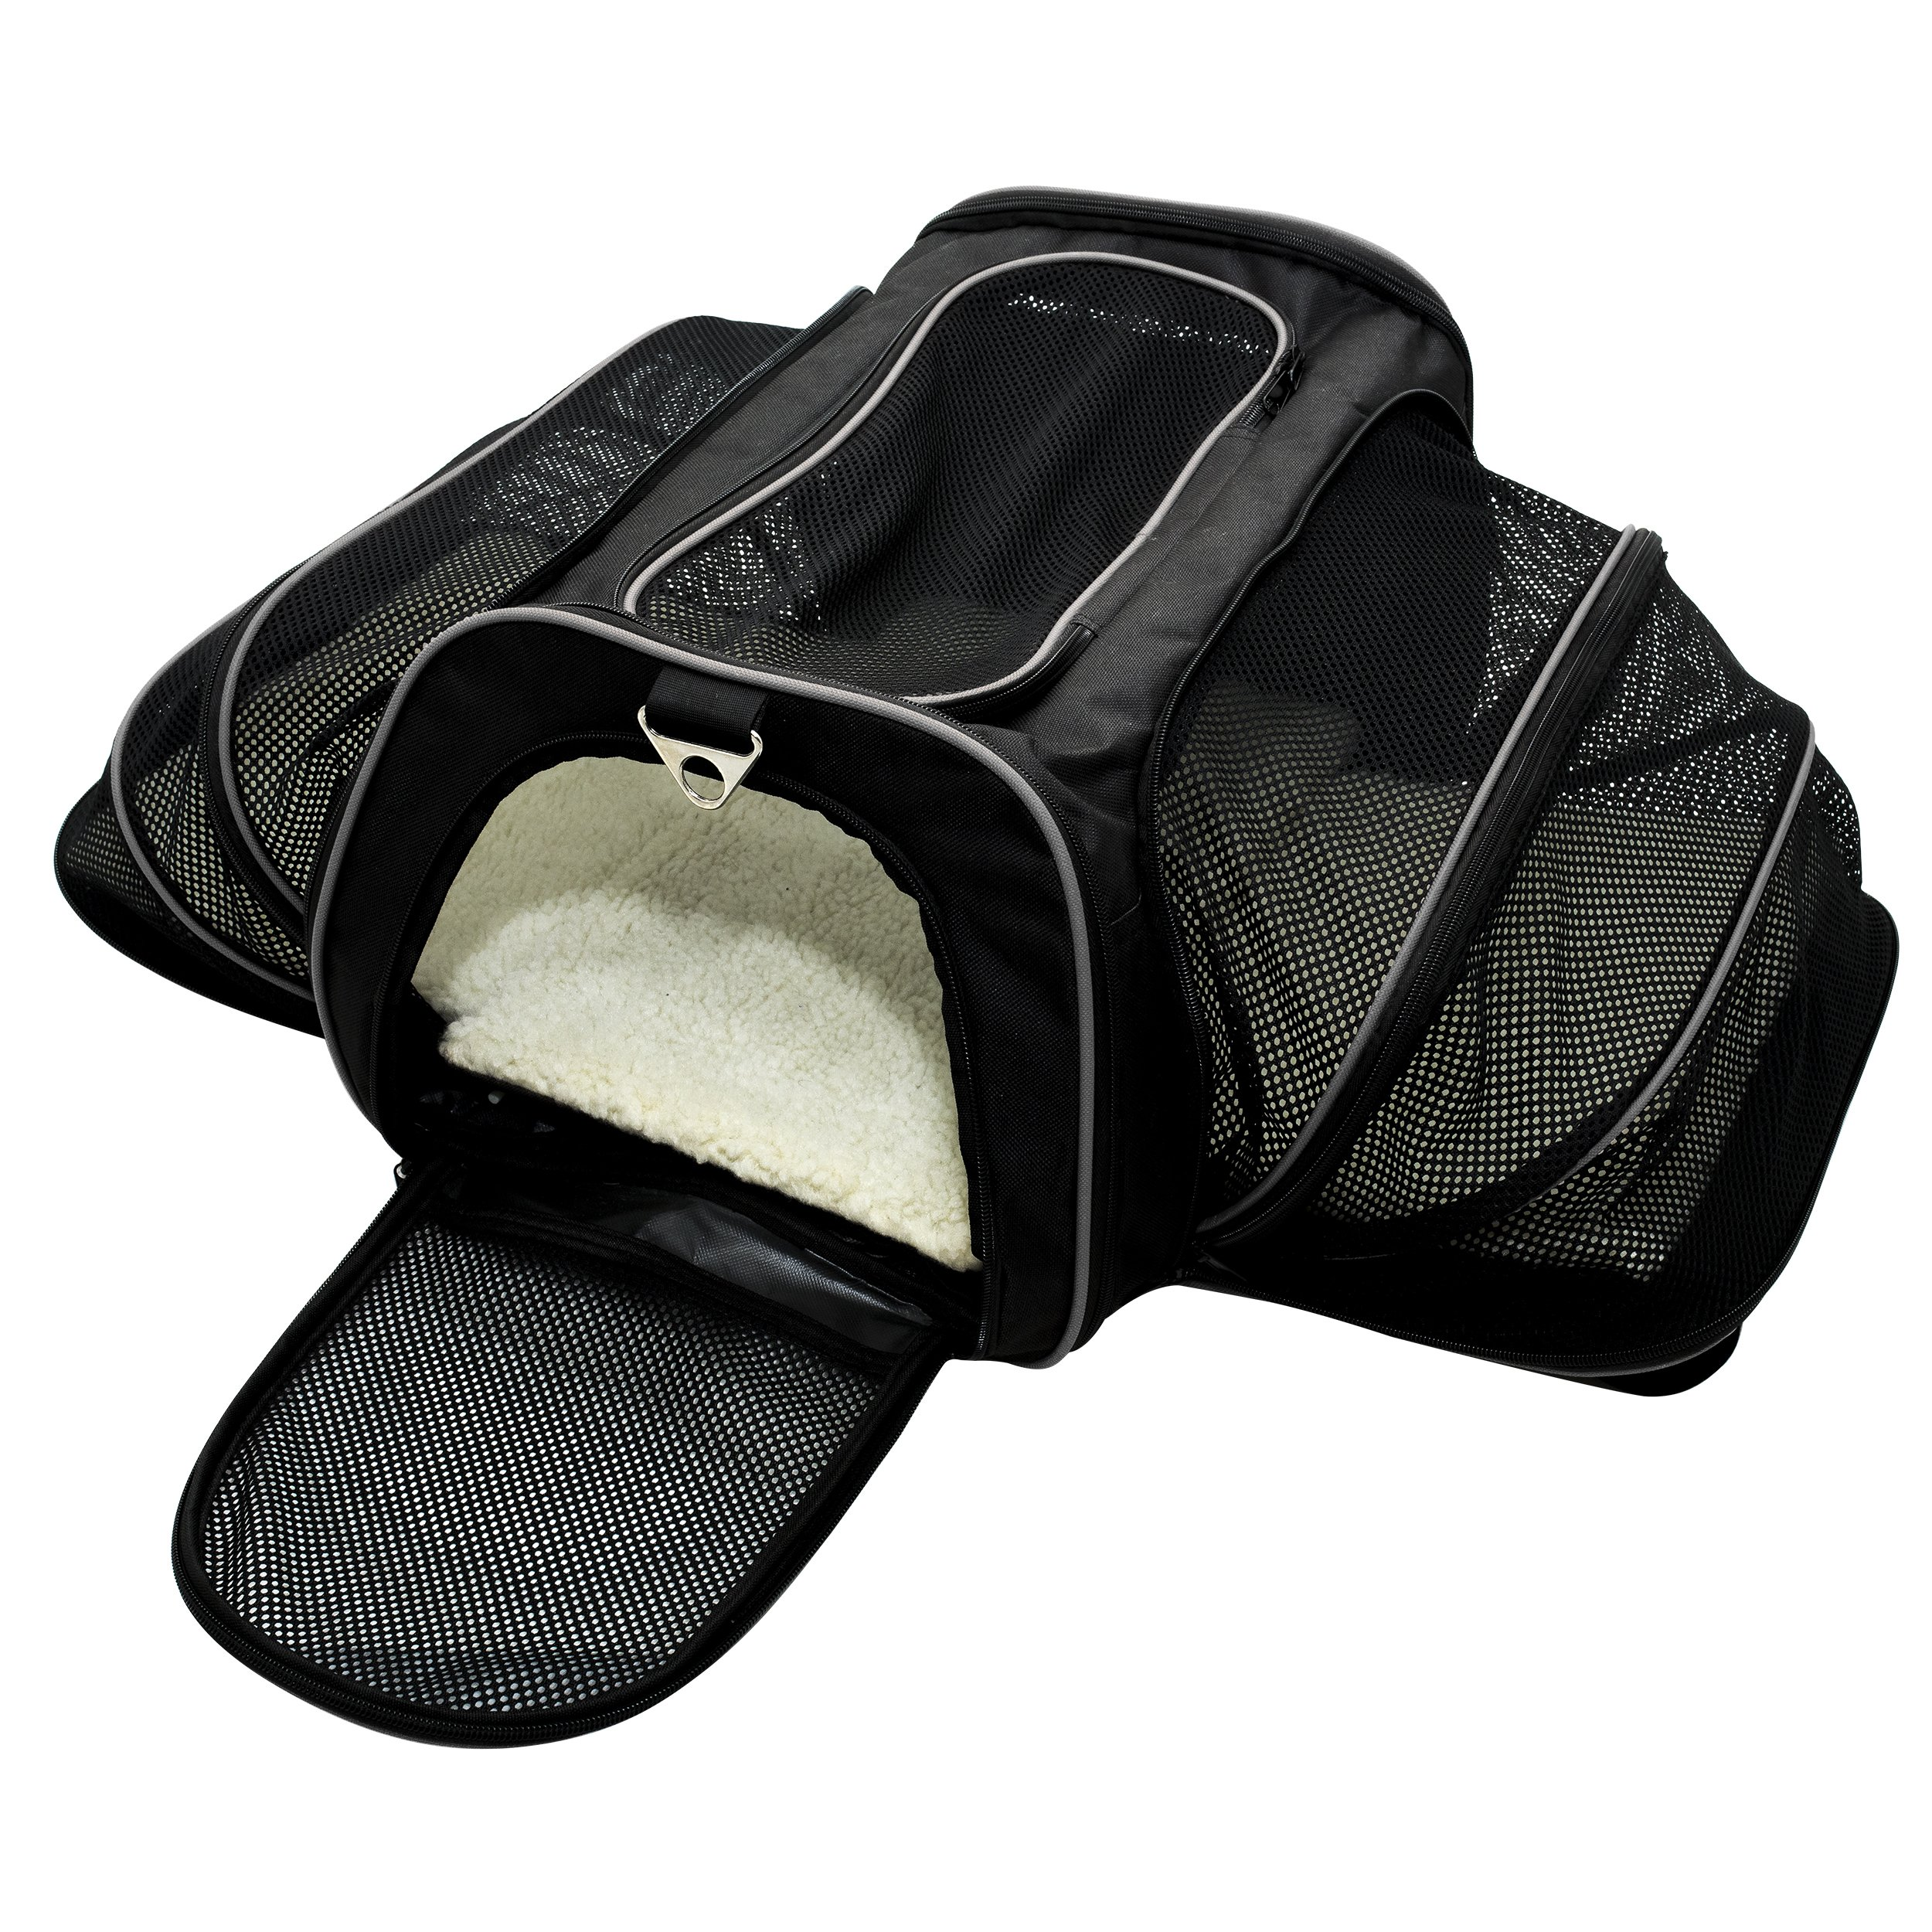 Franklin Pet Supply - Pet Carrier - Airline Approved - Expandable - Pet Kennel - Travel by Franklin Pet Supply